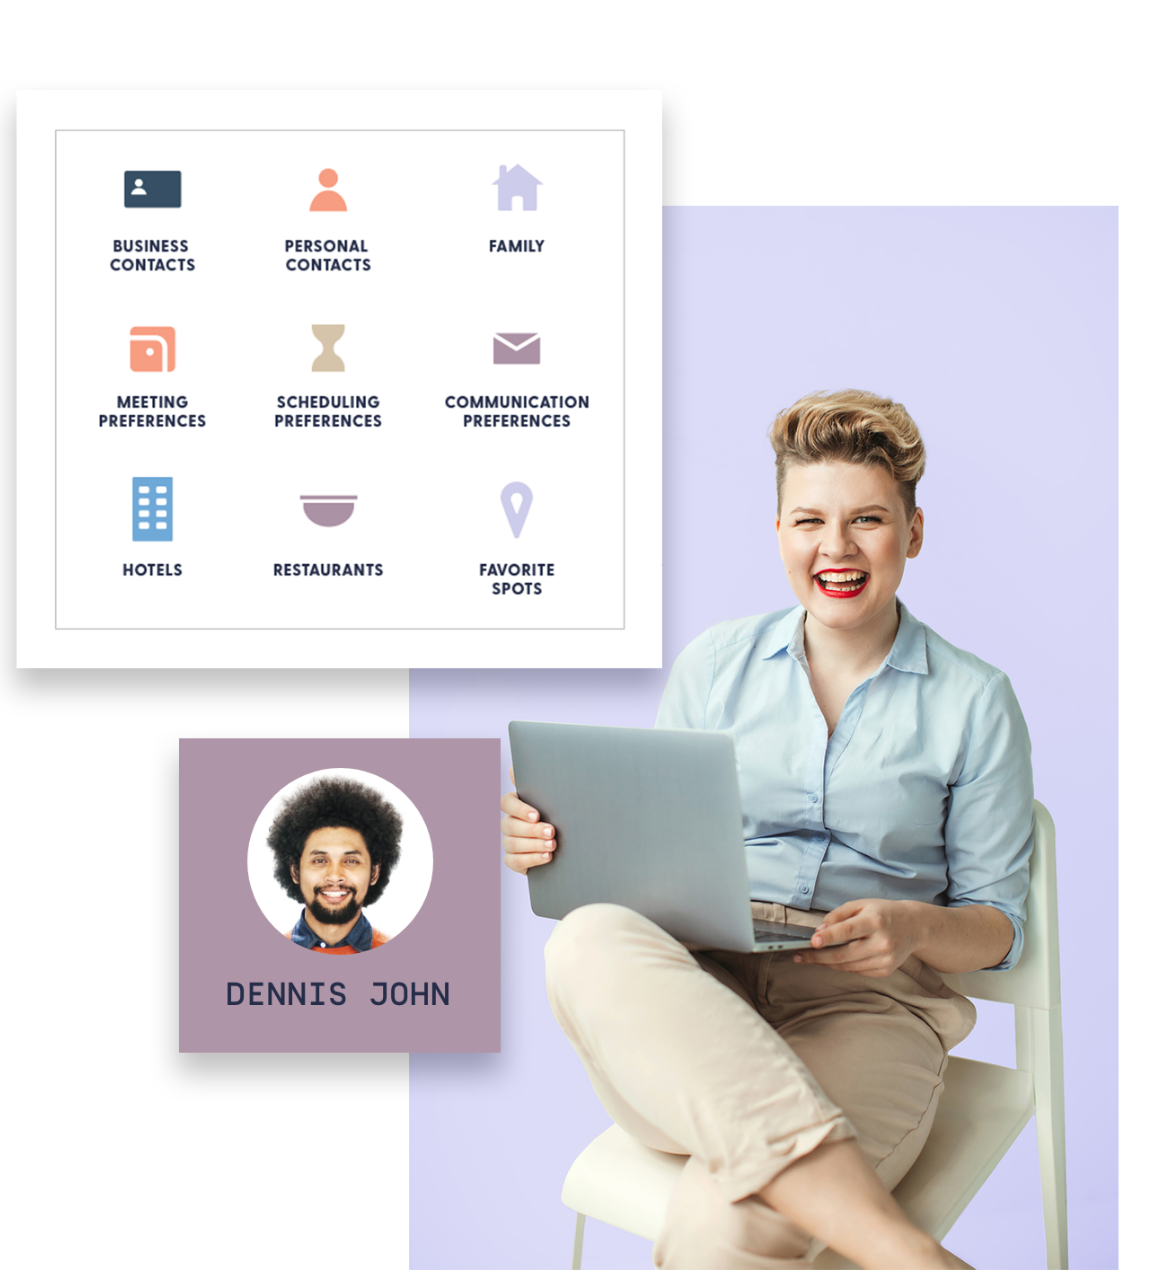 Office Assistant Software